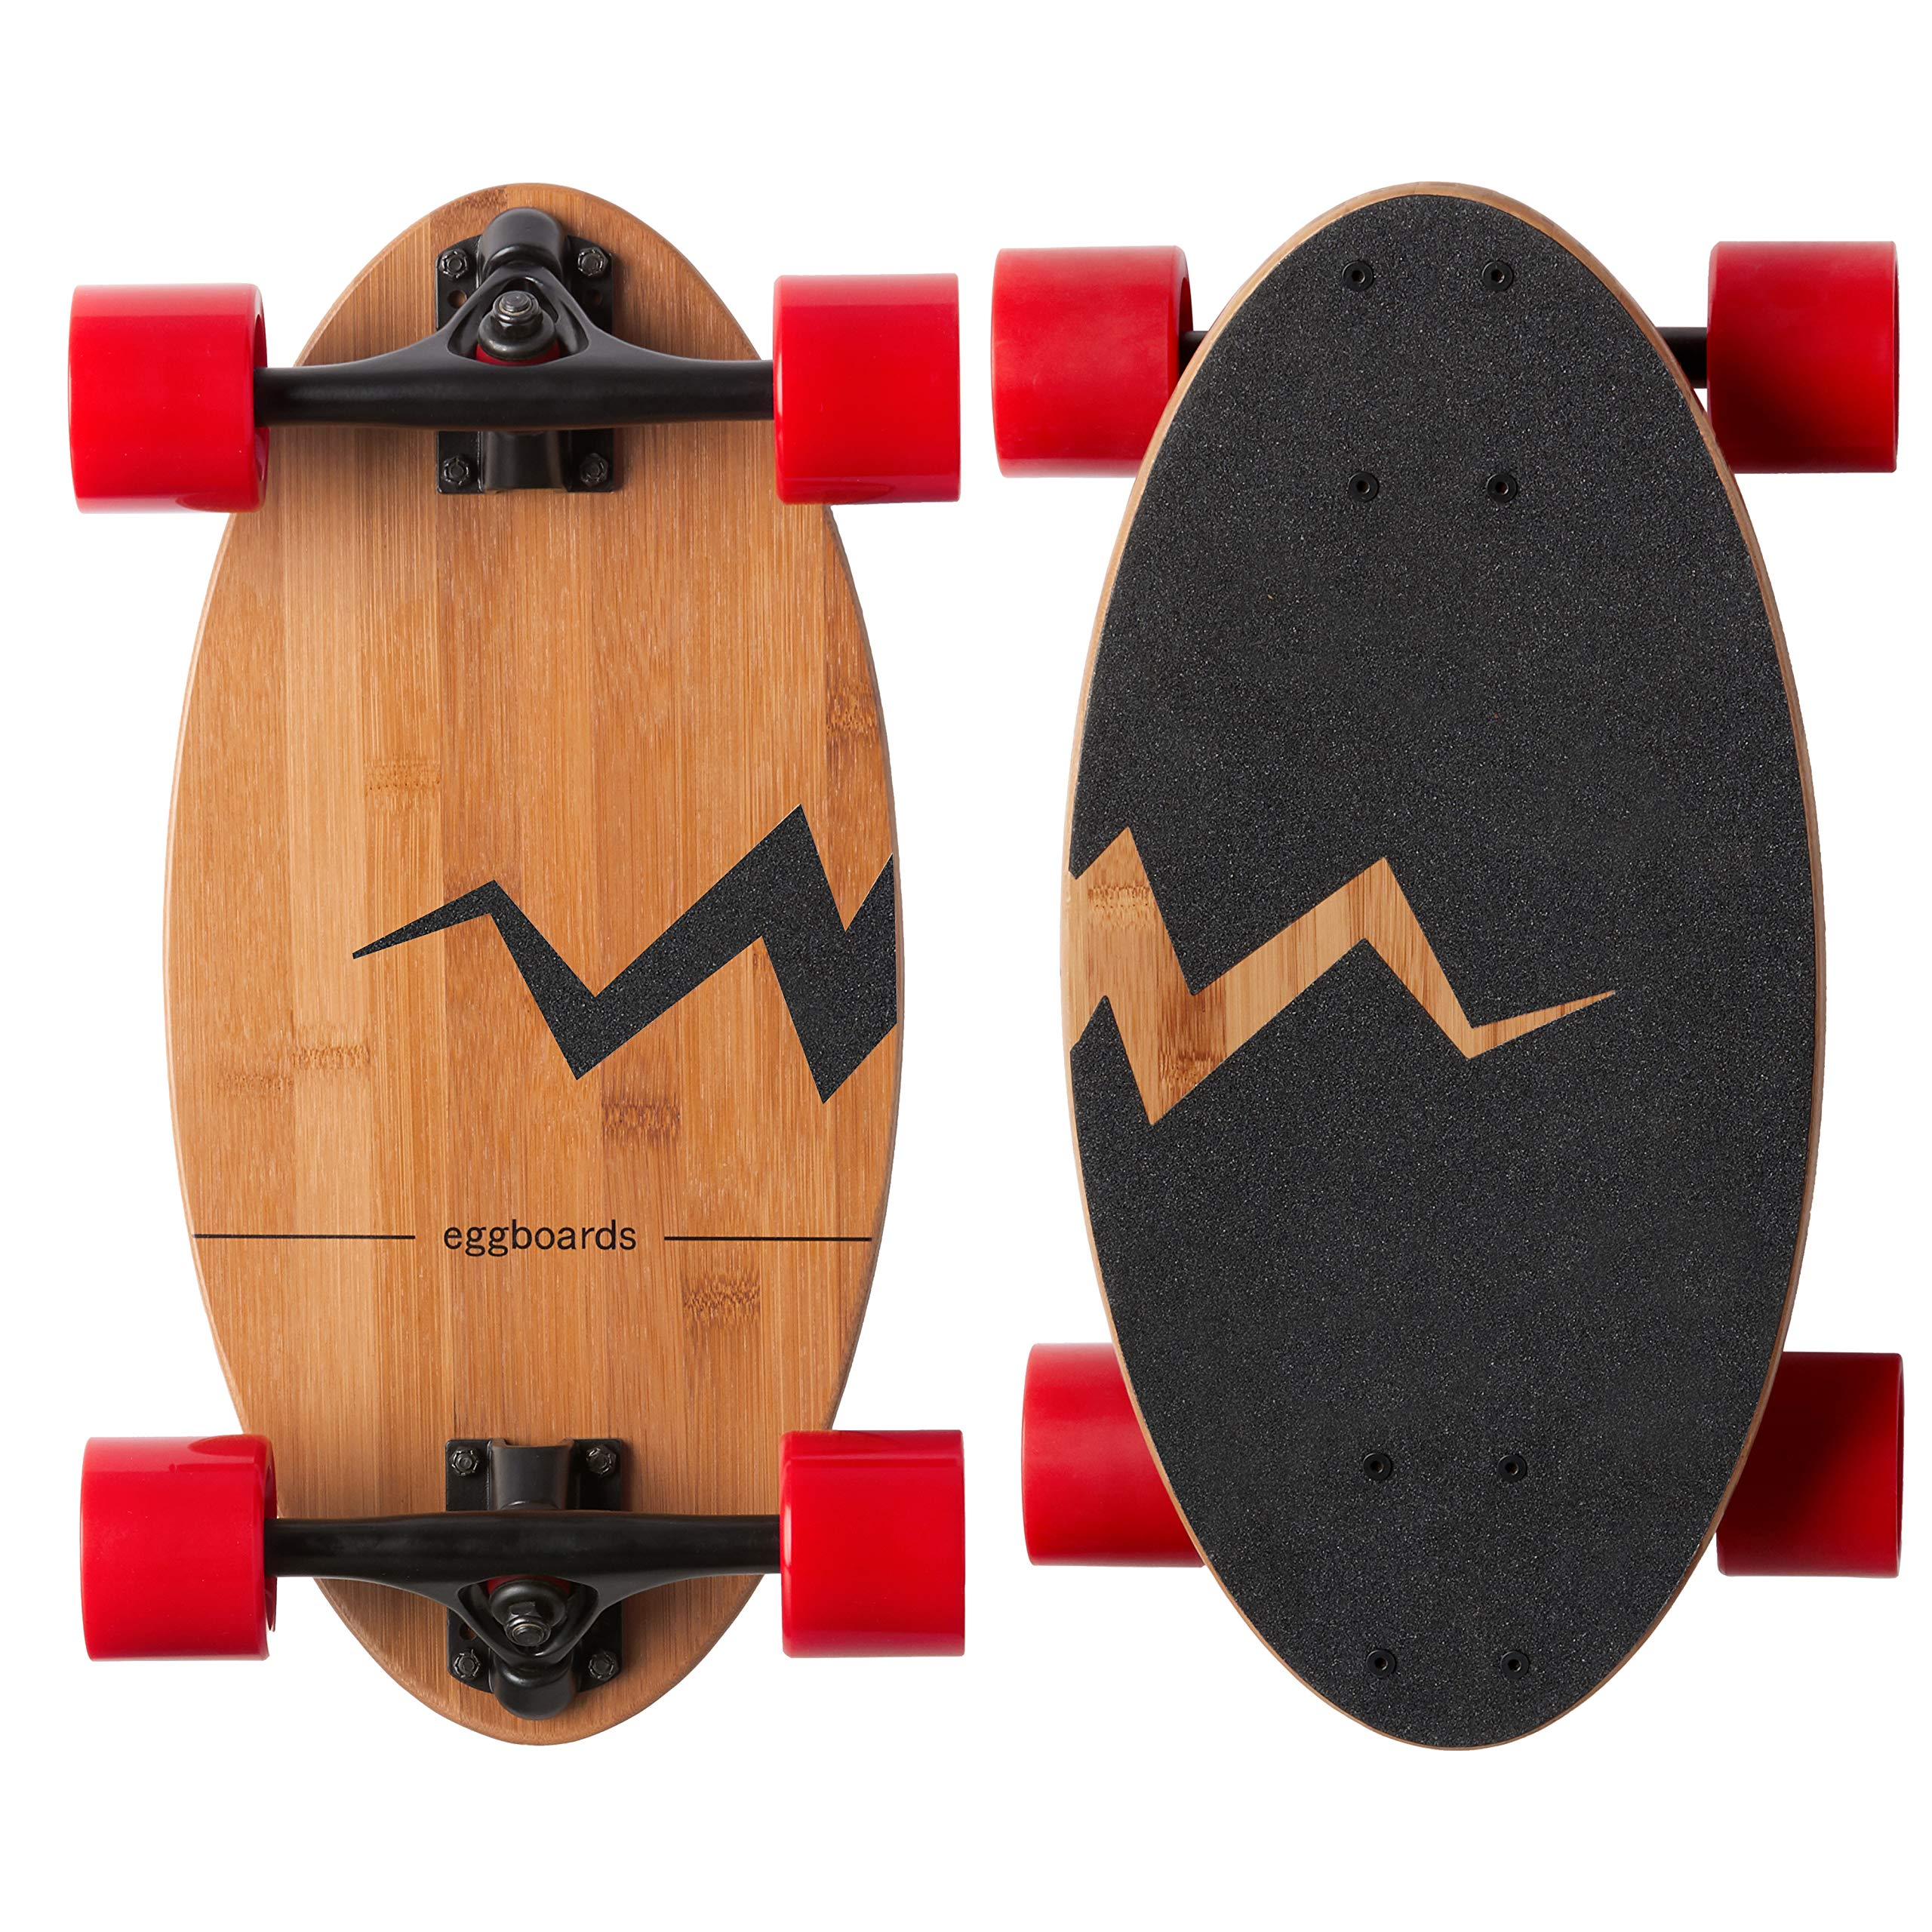 Eggboards Mini Longboard Bamboo Wood - Sustainable Compact Skateboard for Adults and Kids. Easy to Carry, Smooth to Ride